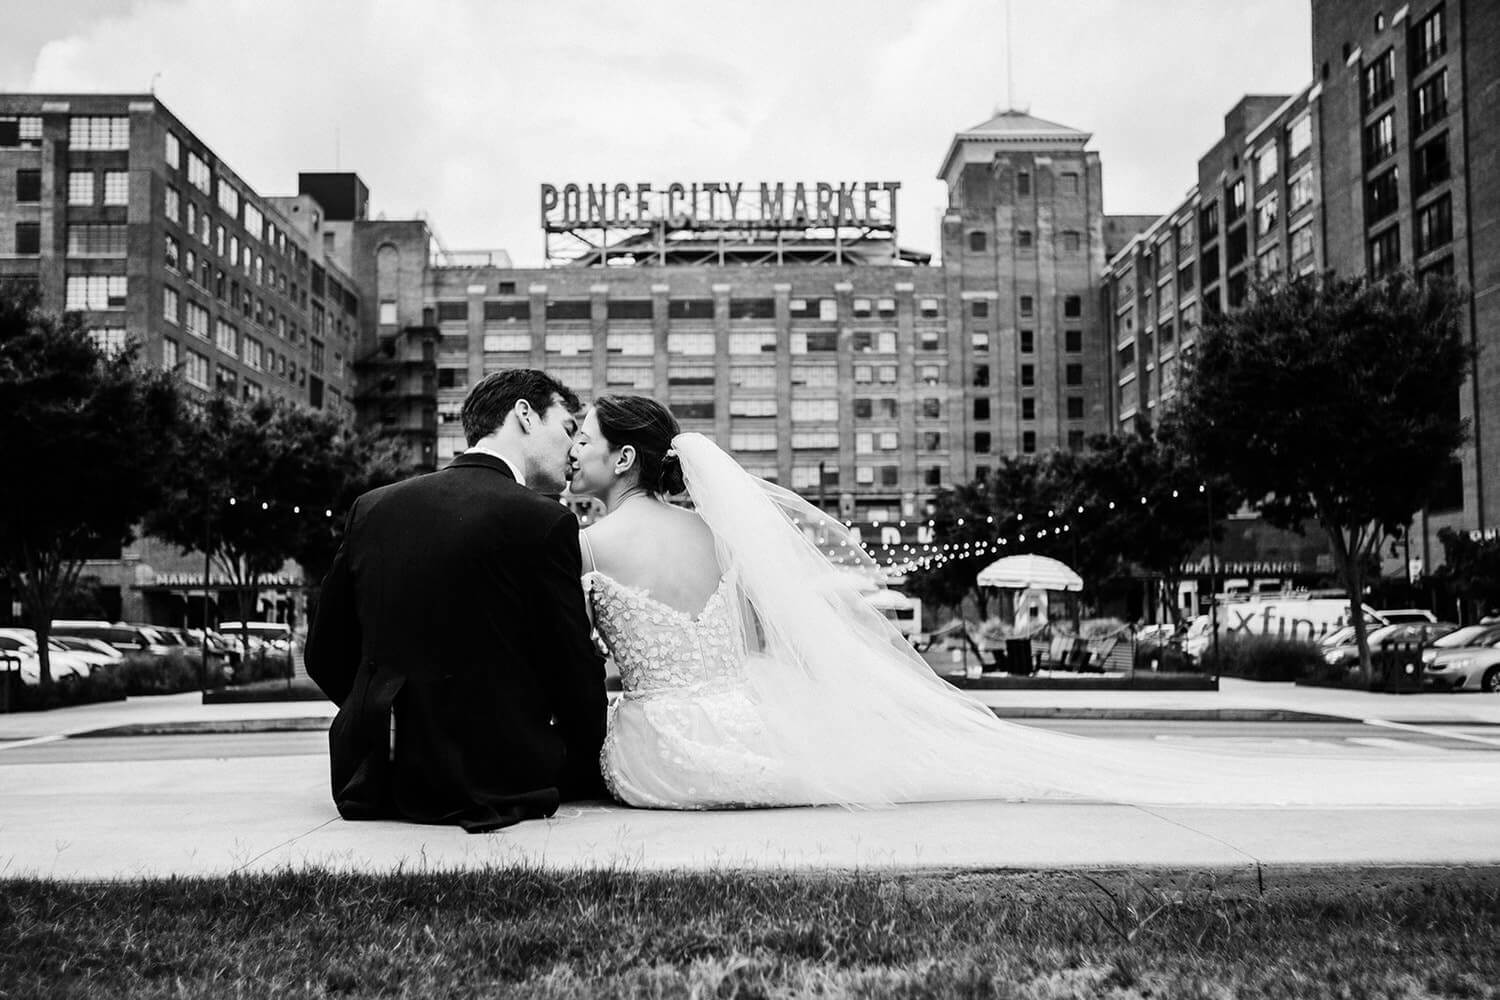 session couple kiss Ponce City Market Atlanta